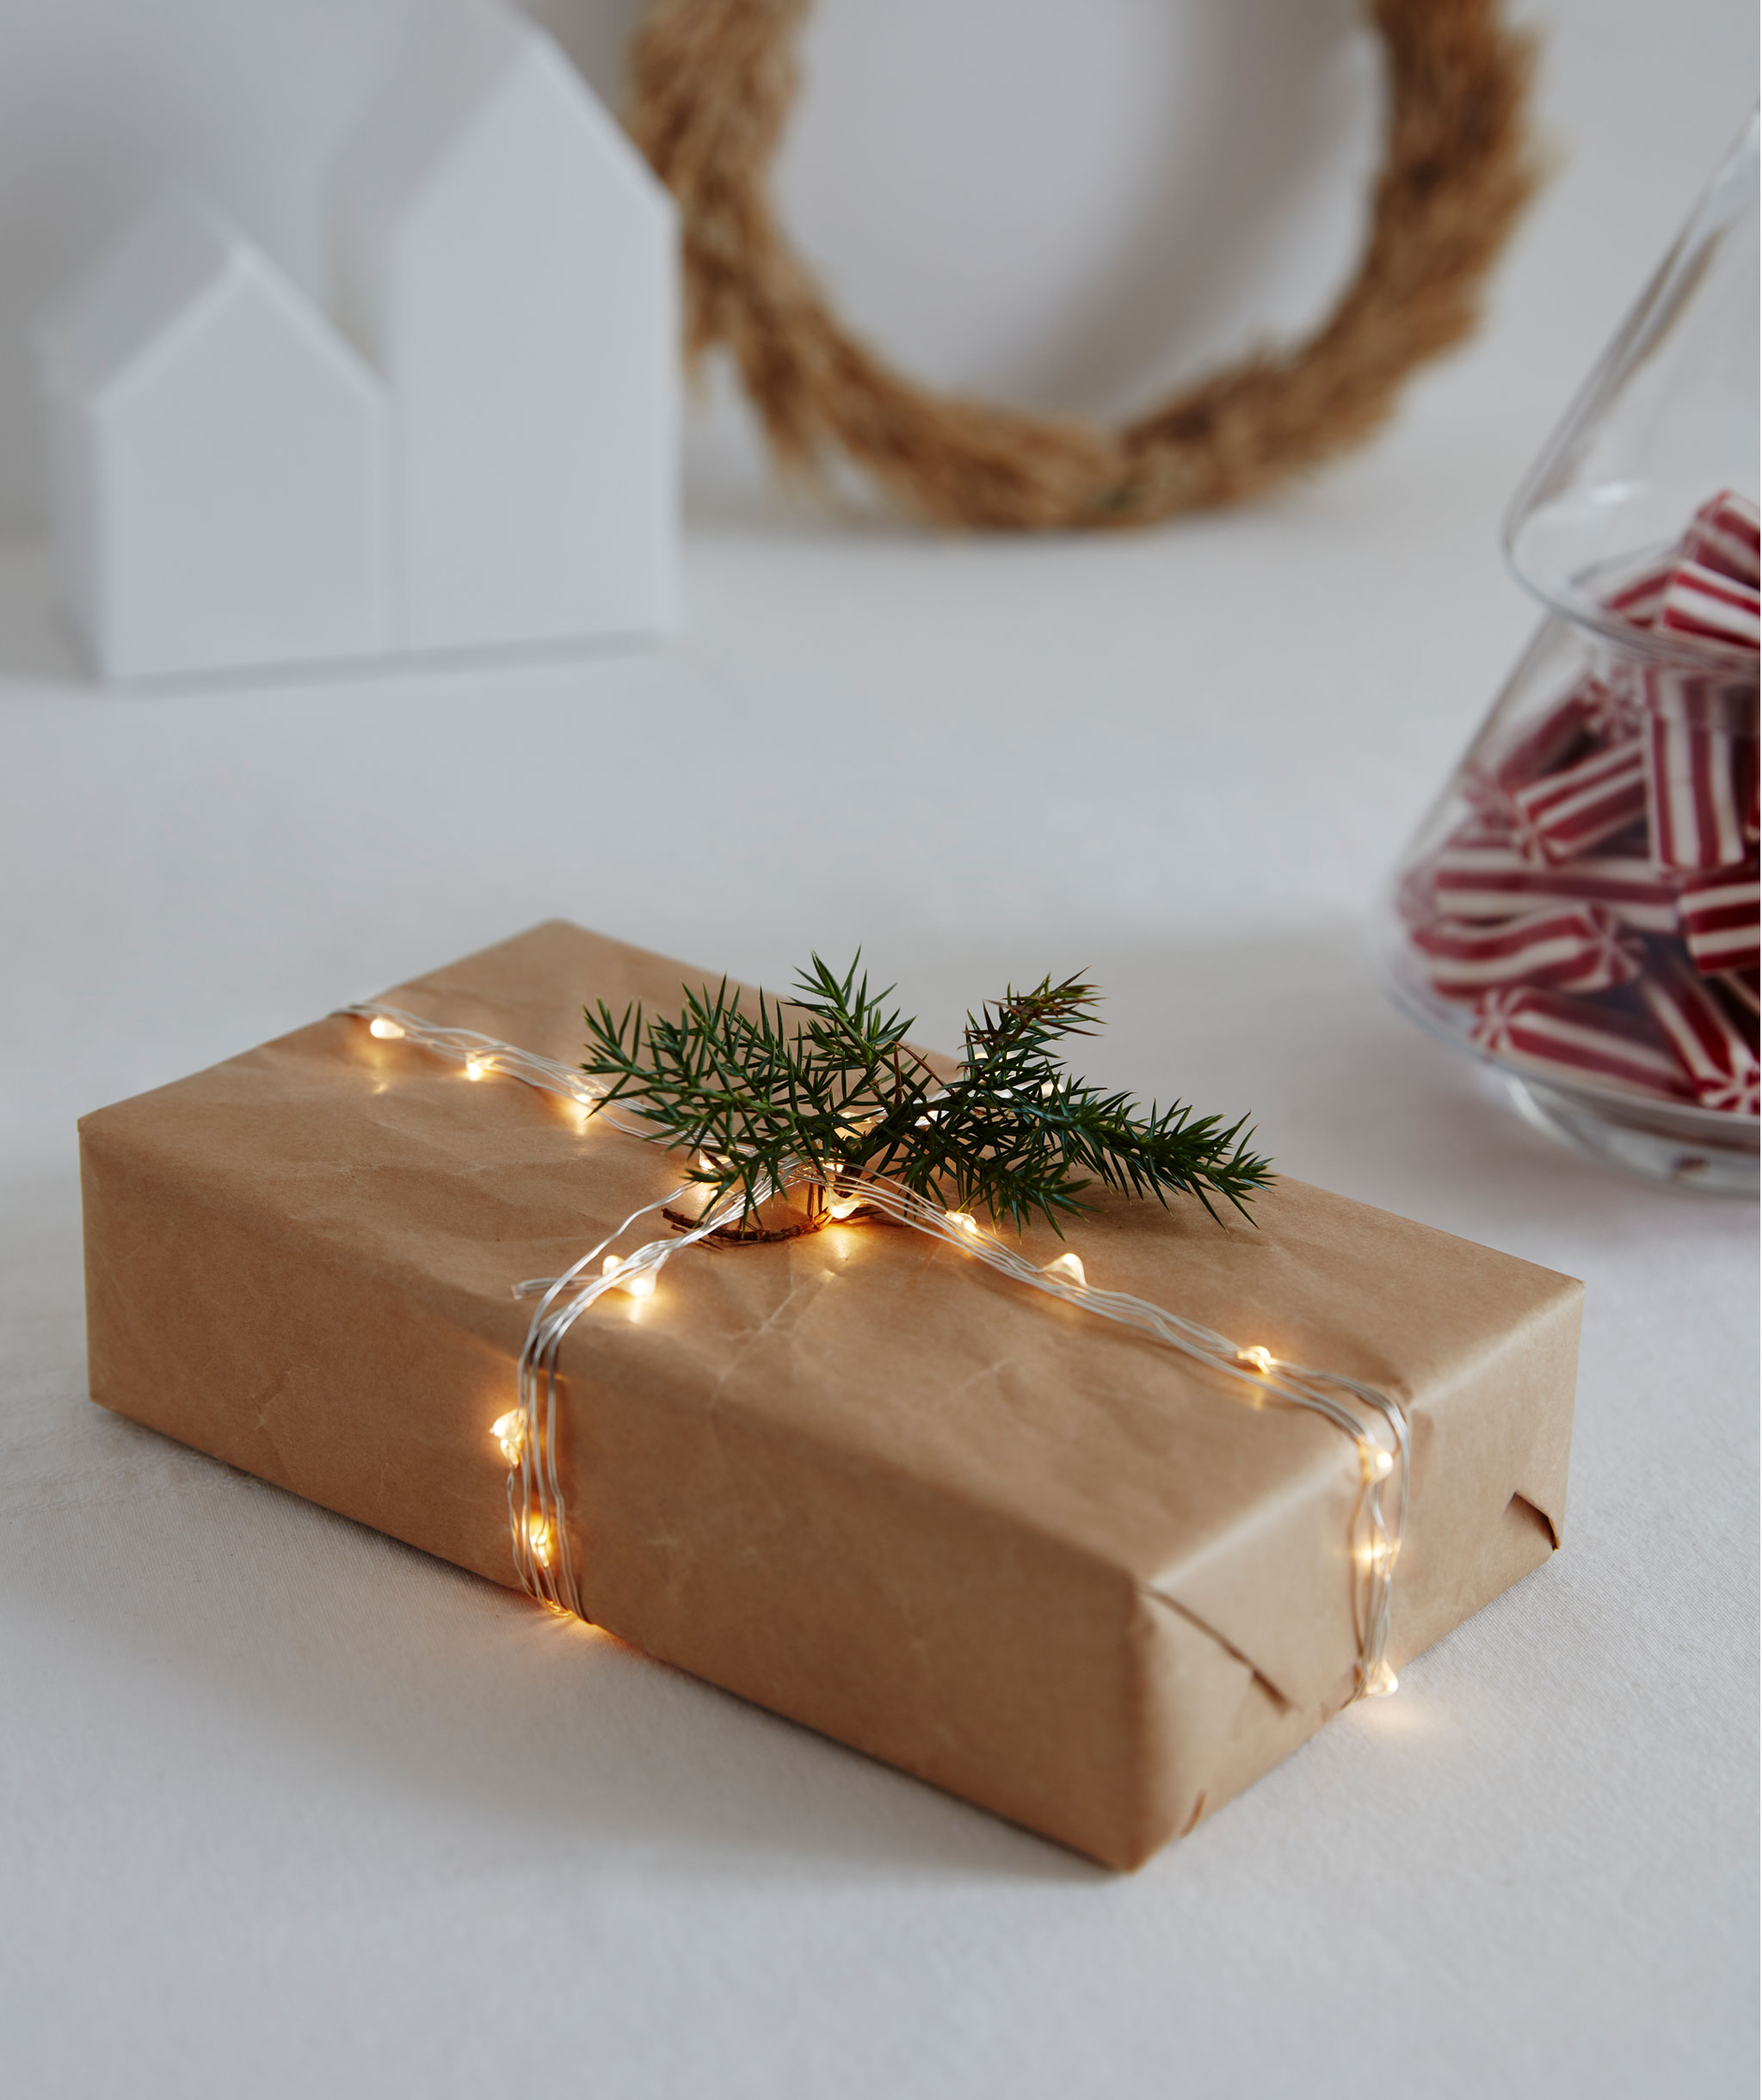 A rectangular gift wrapped in brown paper with a thin, lit lighting chain acting as string; a spruce-like twig for decoration.